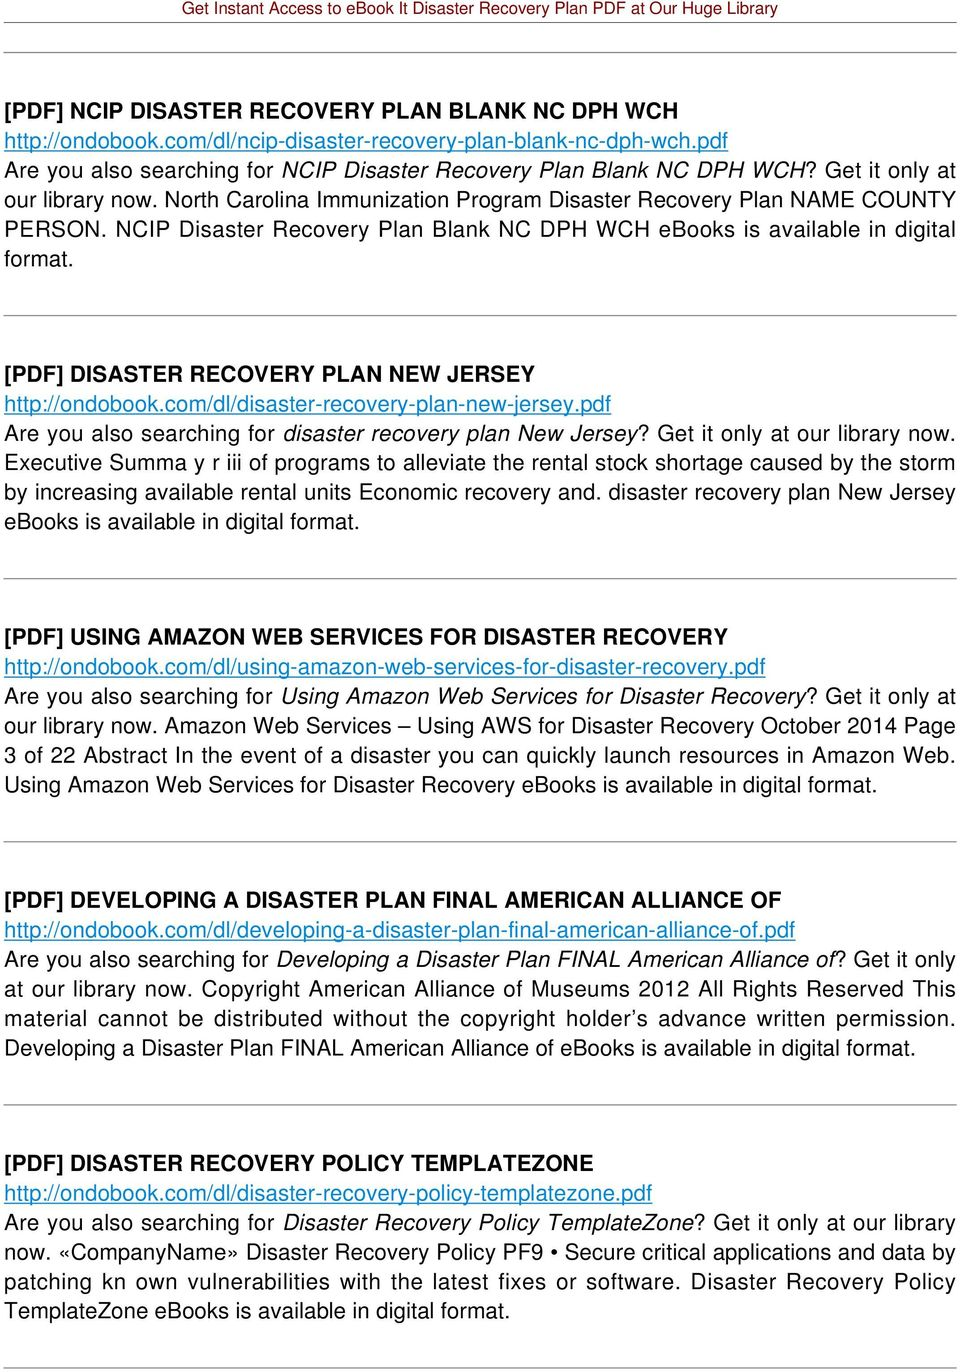 [PDF] DISASTER RECOVERY PLAN NEW JERSEY http://ondobook.com/dl/disaster-recovery-plan-new-jersey.pdf Are you also searching for disaster recovery plan New Jersey? Get it only at our library now.